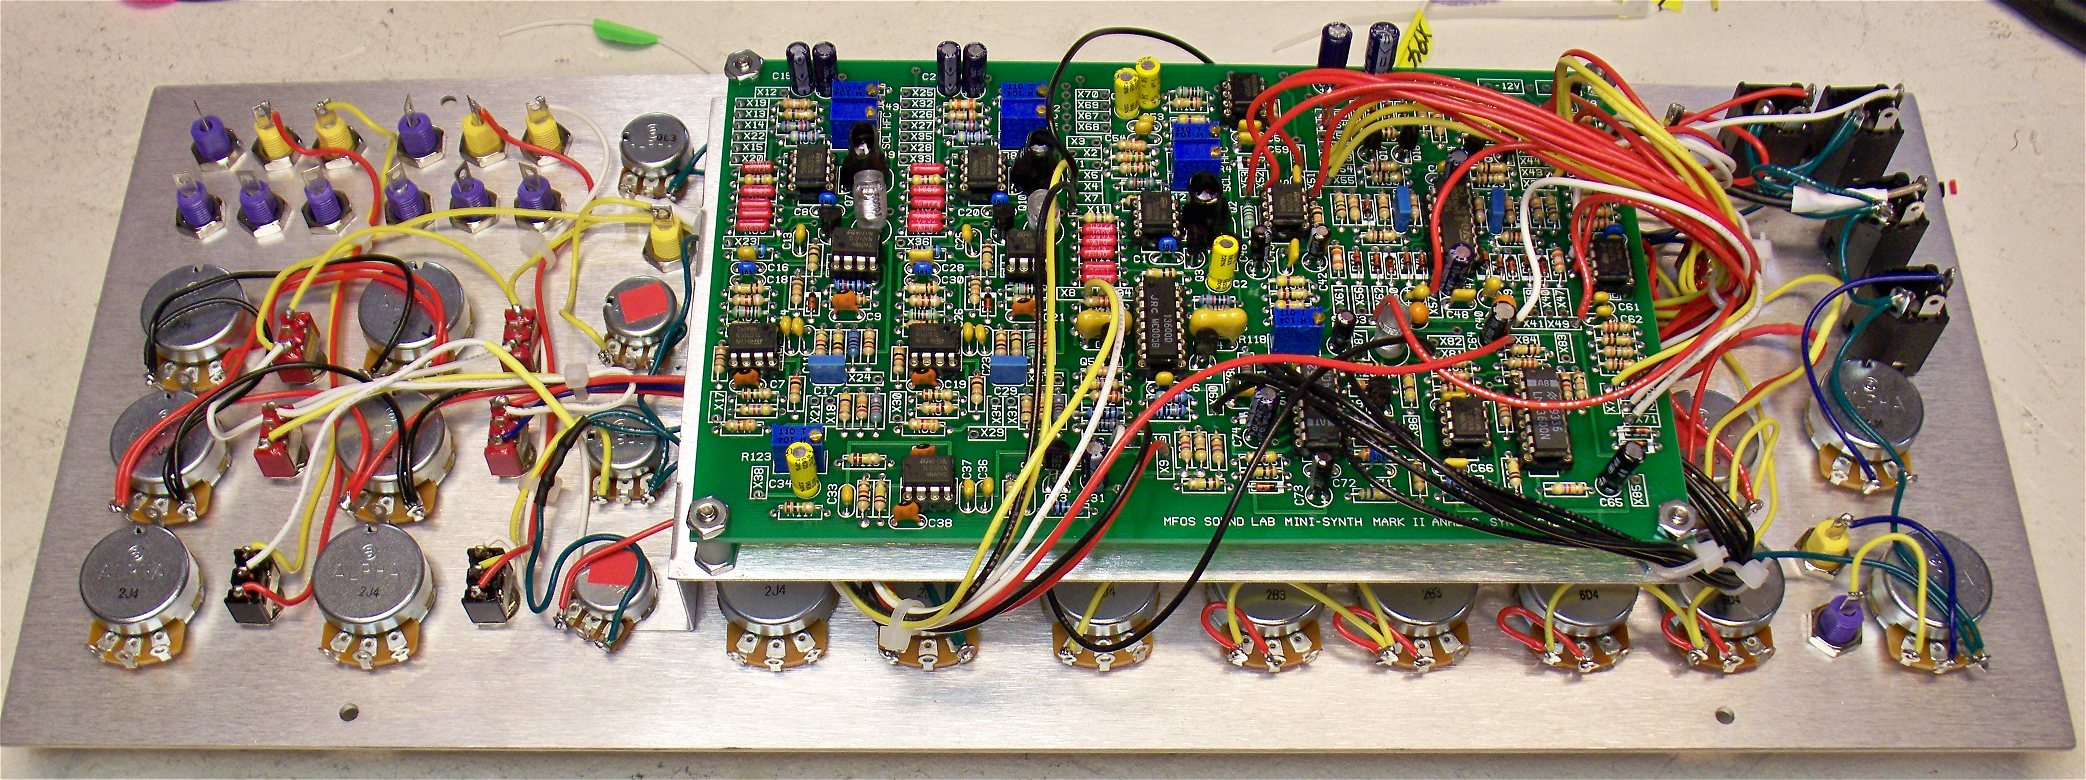 Peachy Index Of Analogsynth New Soundlabminimarkii Images Np Wiring 101 Kniepimsautoservicenl